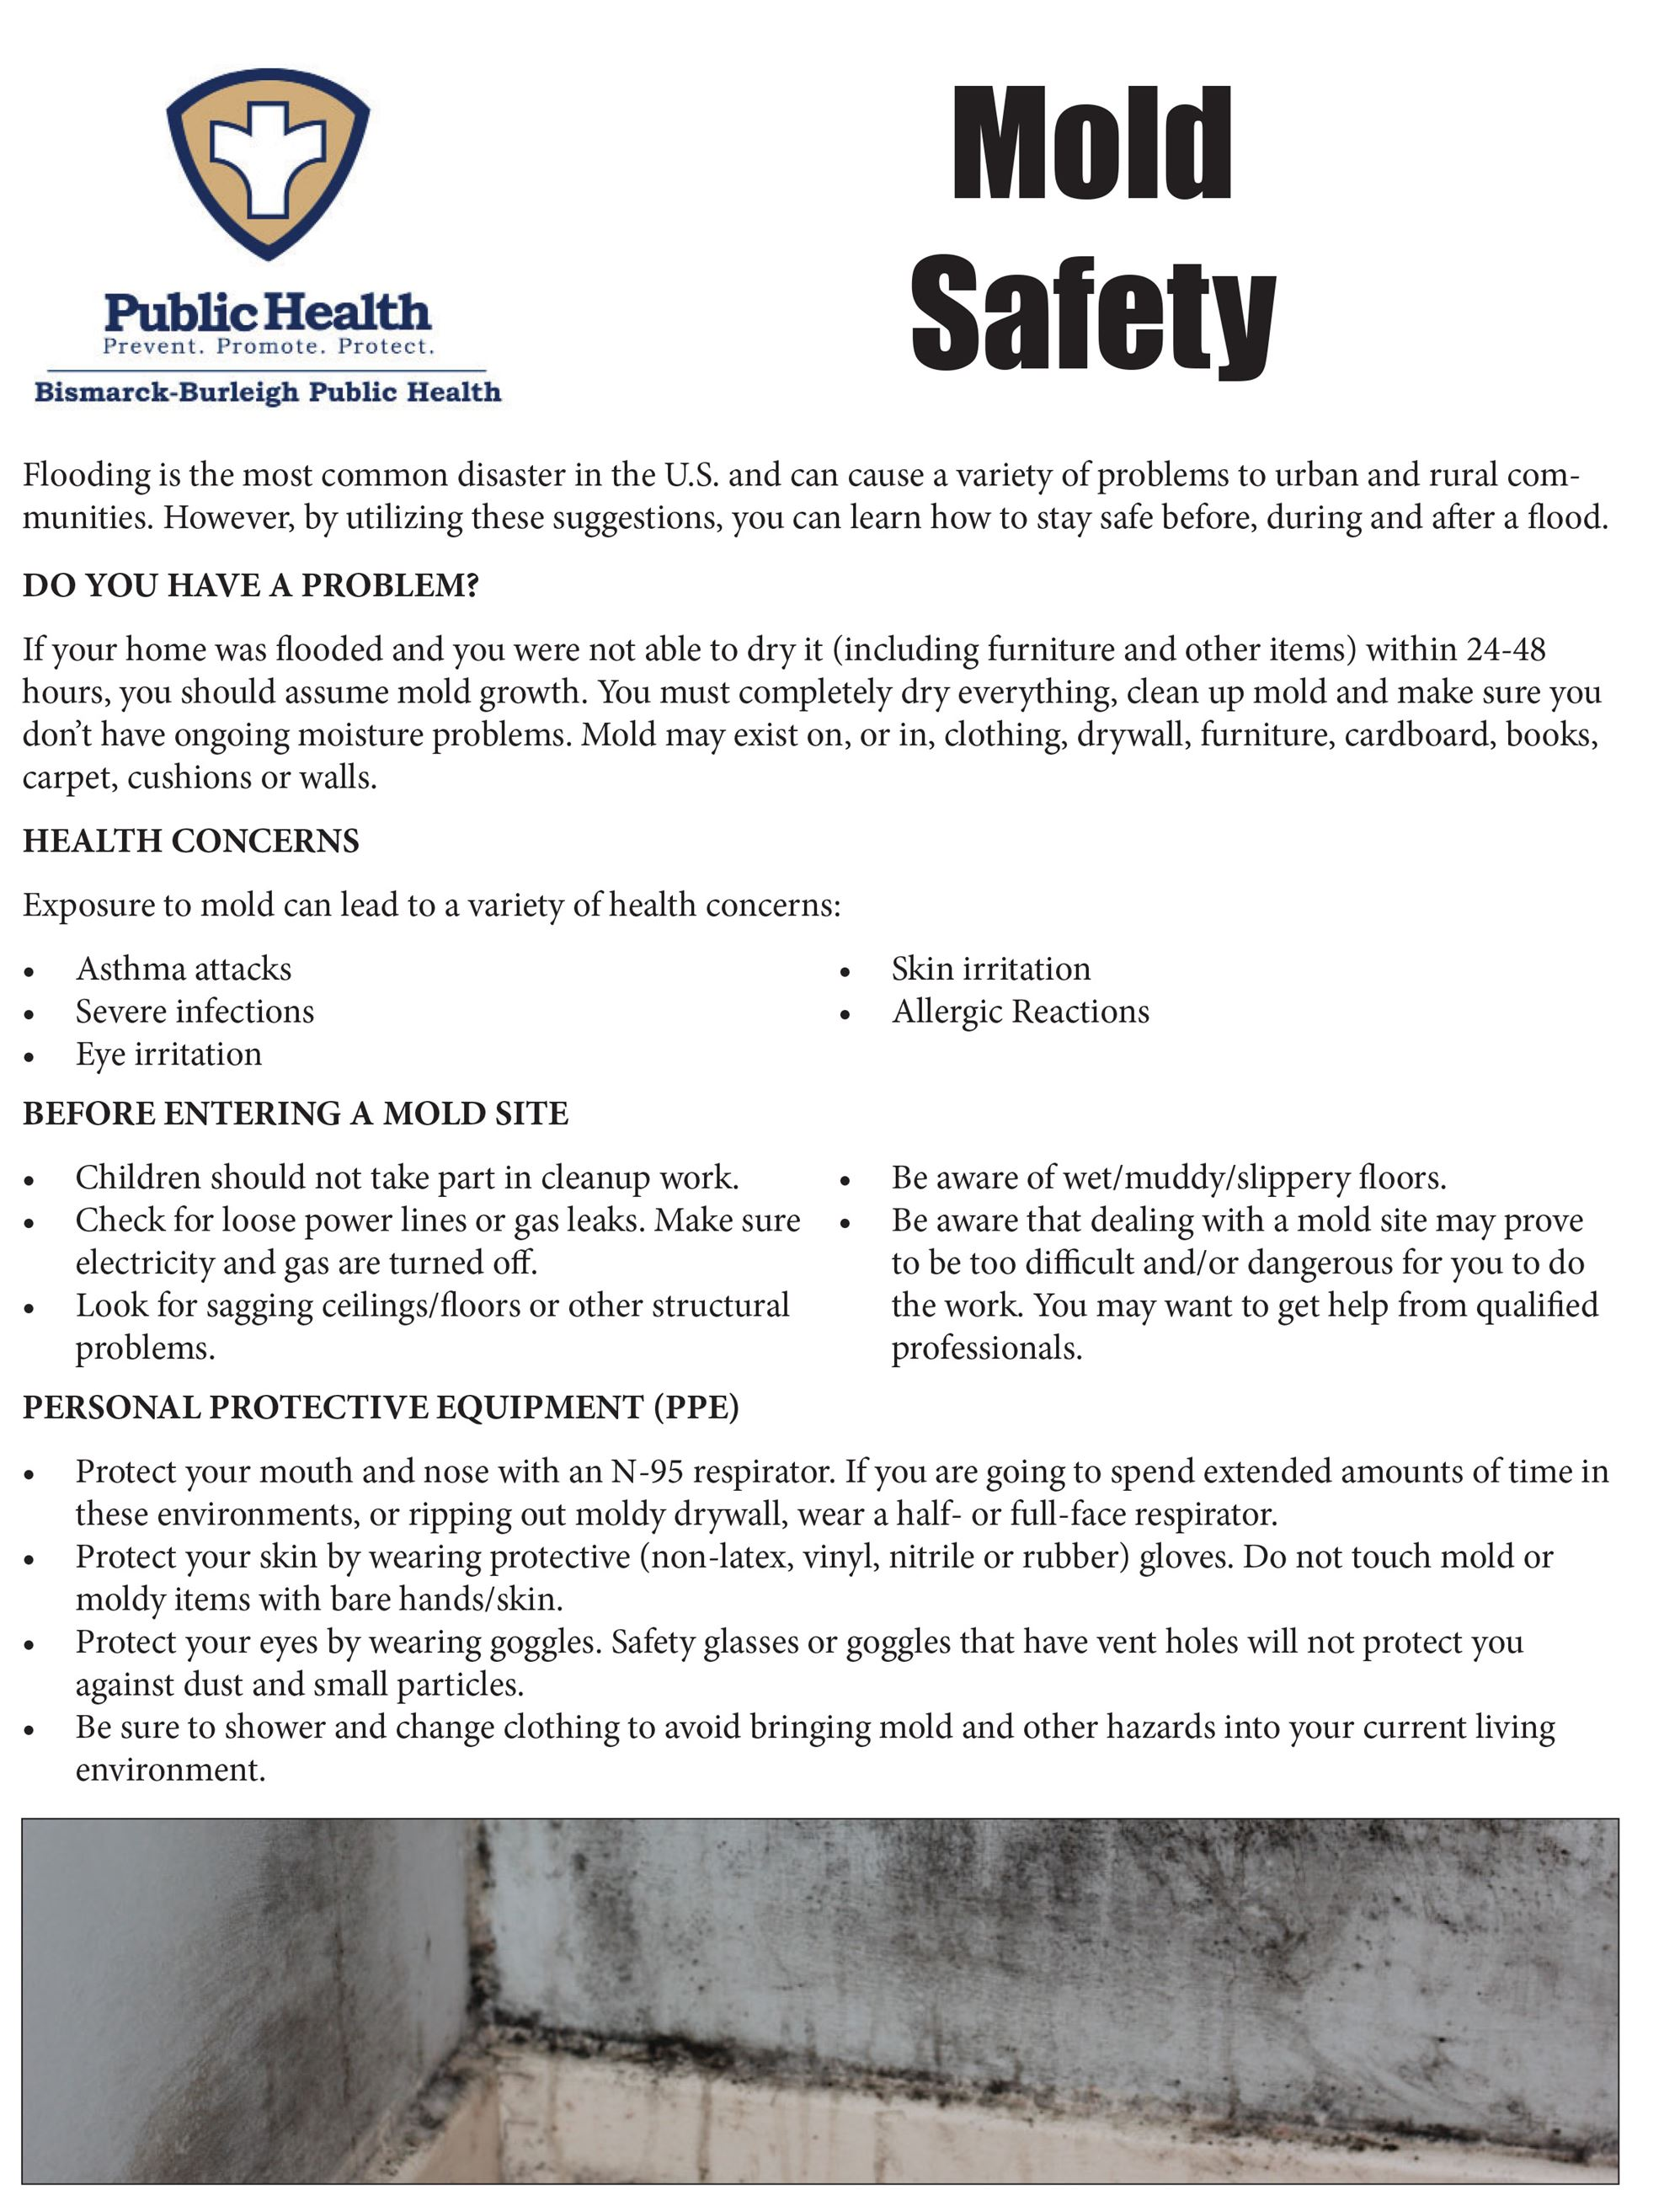 Mold Safety BBPH-1